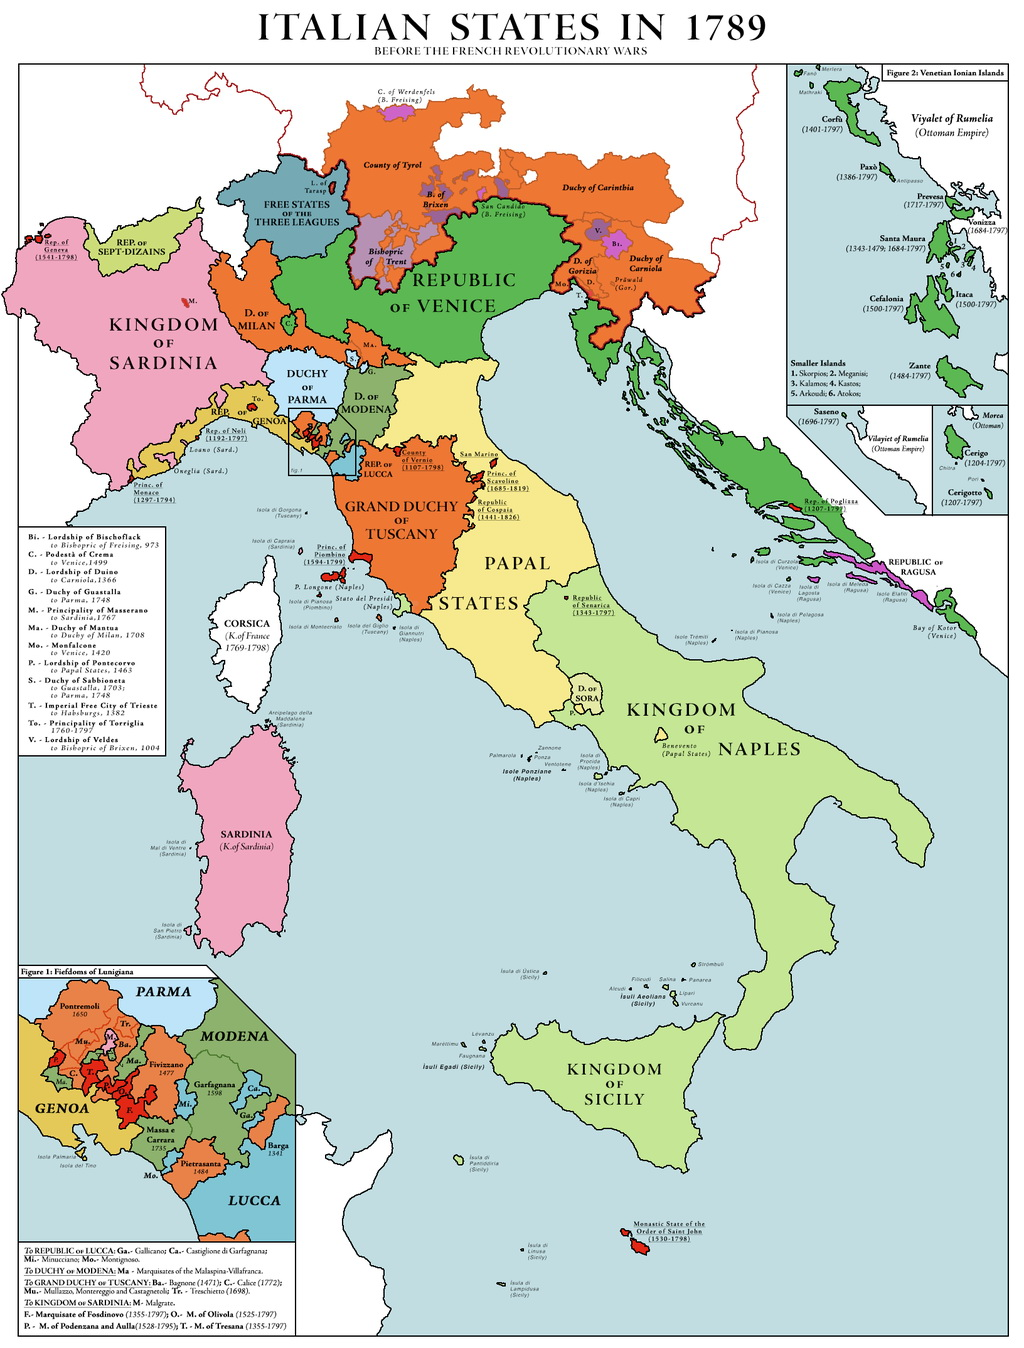 Italian States before the French Revolutionary Wars (1789)